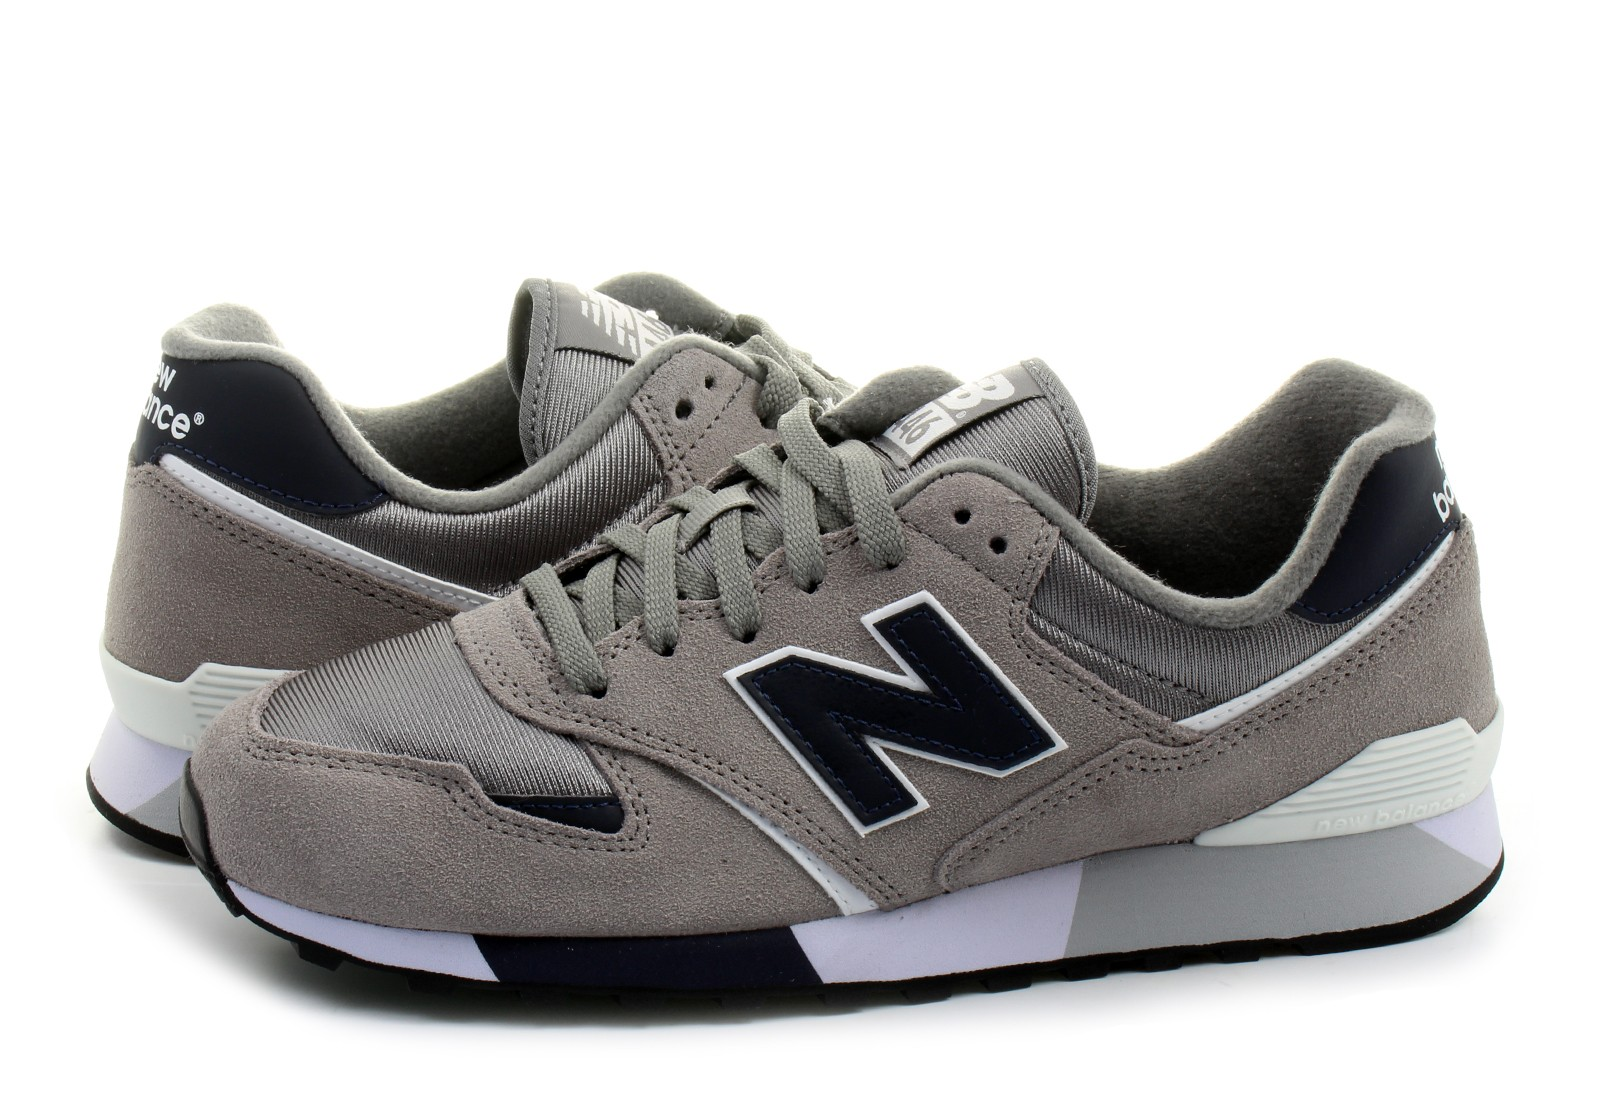 new balance shoes u466 u446gn online shop for sneakers shoes and boots. Black Bedroom Furniture Sets. Home Design Ideas